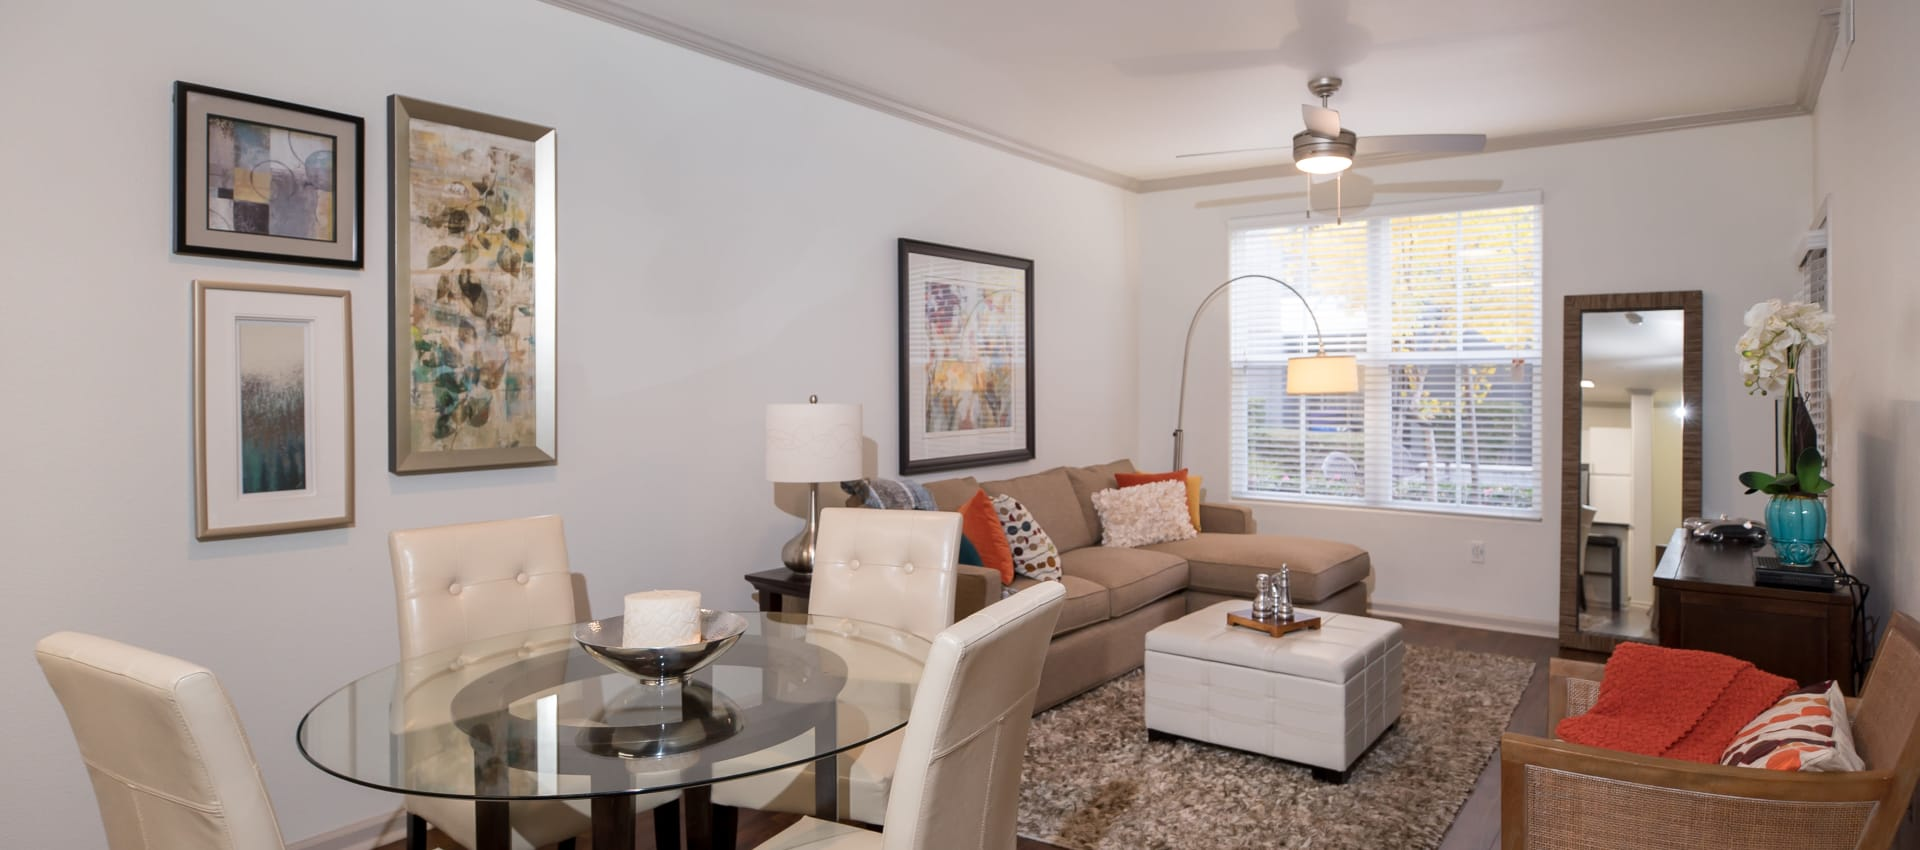 Living room at Park Central in Concord, California